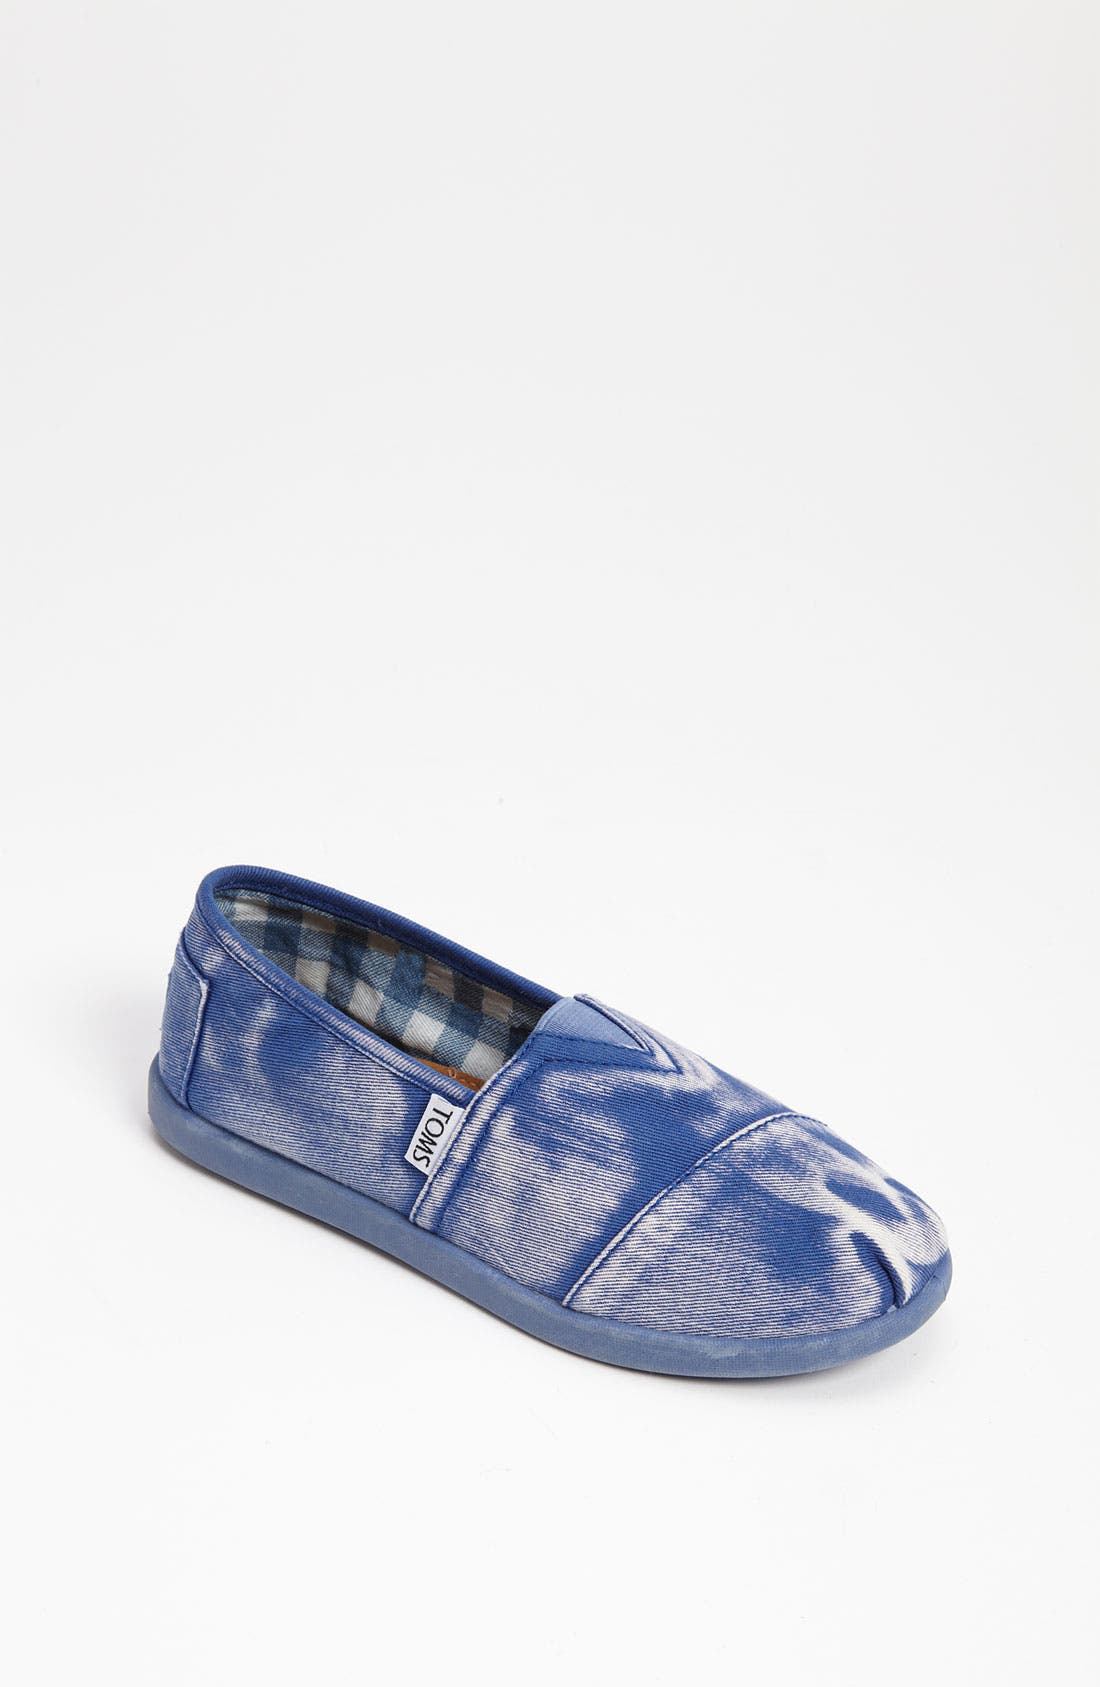 Main Image - TOMS 'Classic Youth - Palmetto' Slip-On (Toddler, Little Kid & Big Kid)